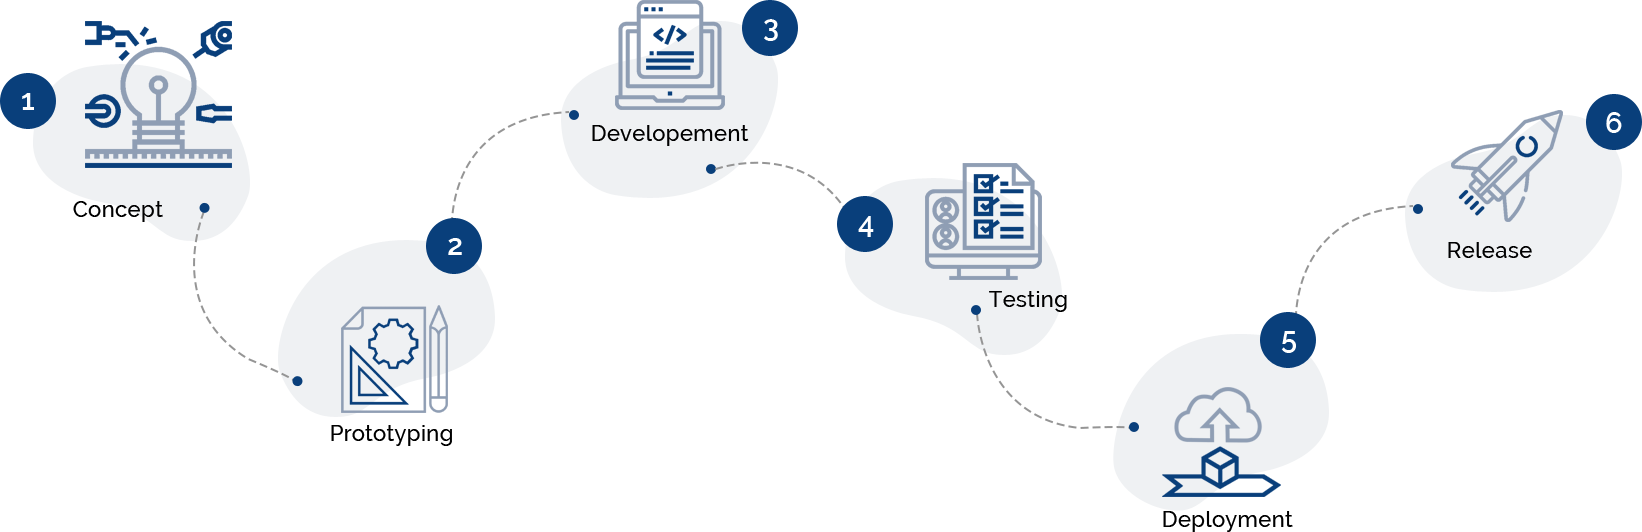 Illustration of mobile app development process